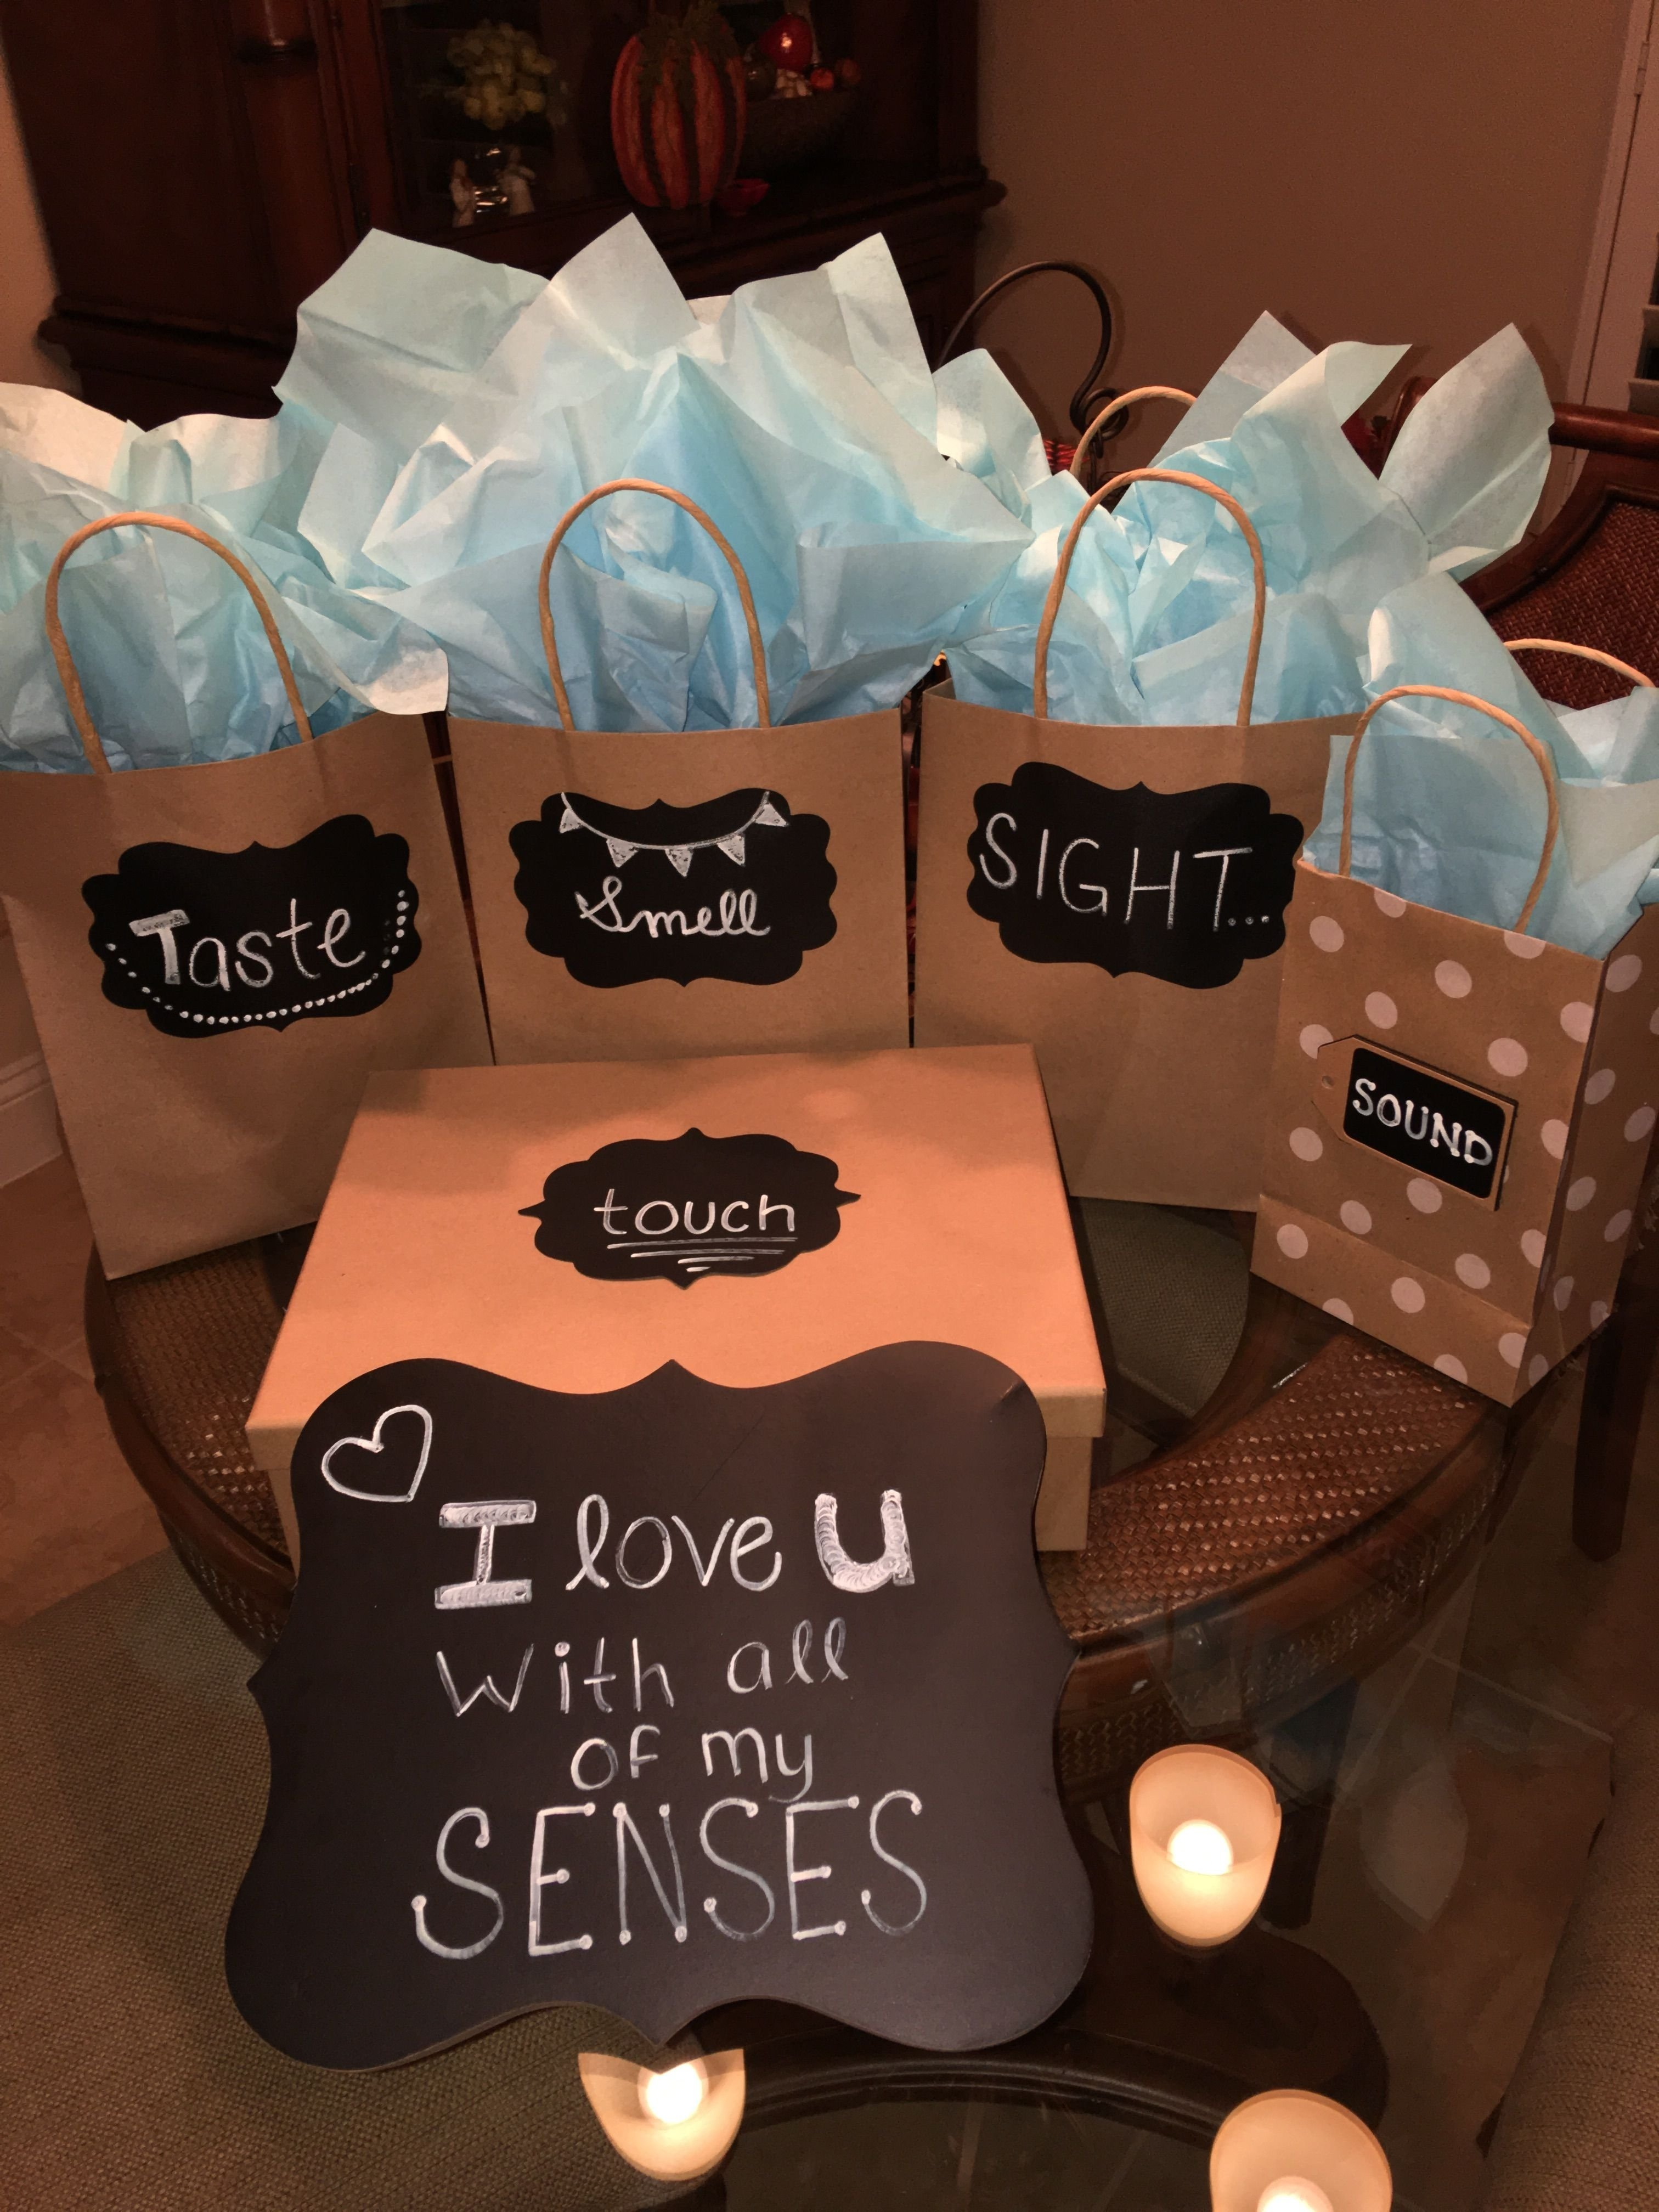 10 Most Recommended Romantic Ideas For Boyfriends Birthday i love you with all of my senses my version for my boyfriends 2